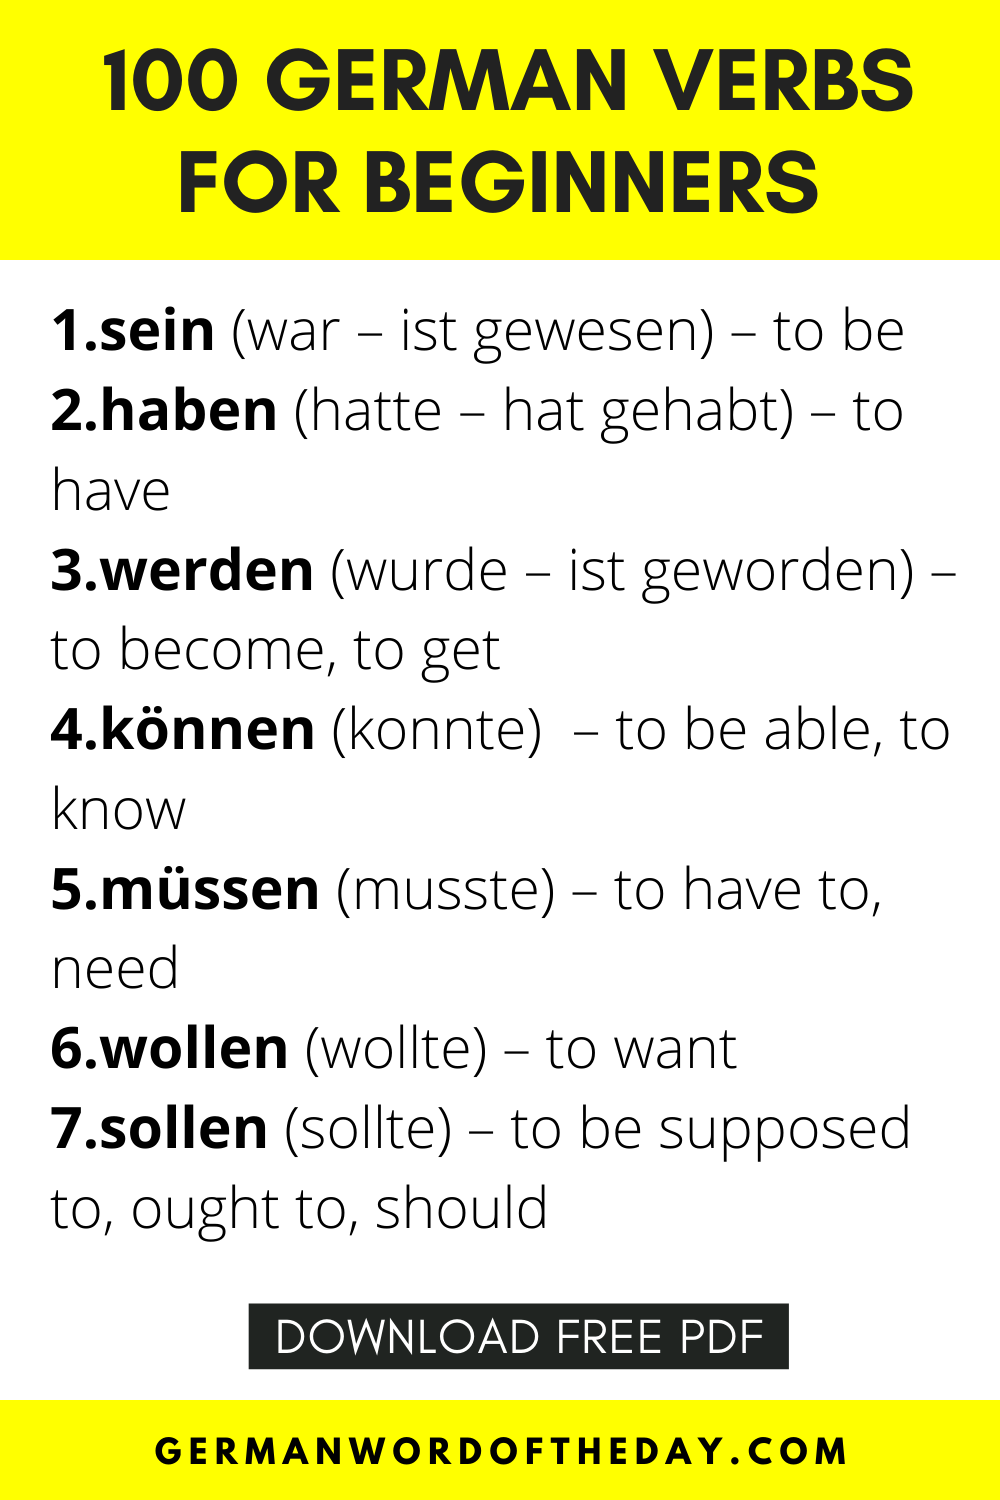 Top 100 German Verbs For Beginners Pdf With Sentence Examples And Past Participle In 2021 German Verbs German Language Learning German Language